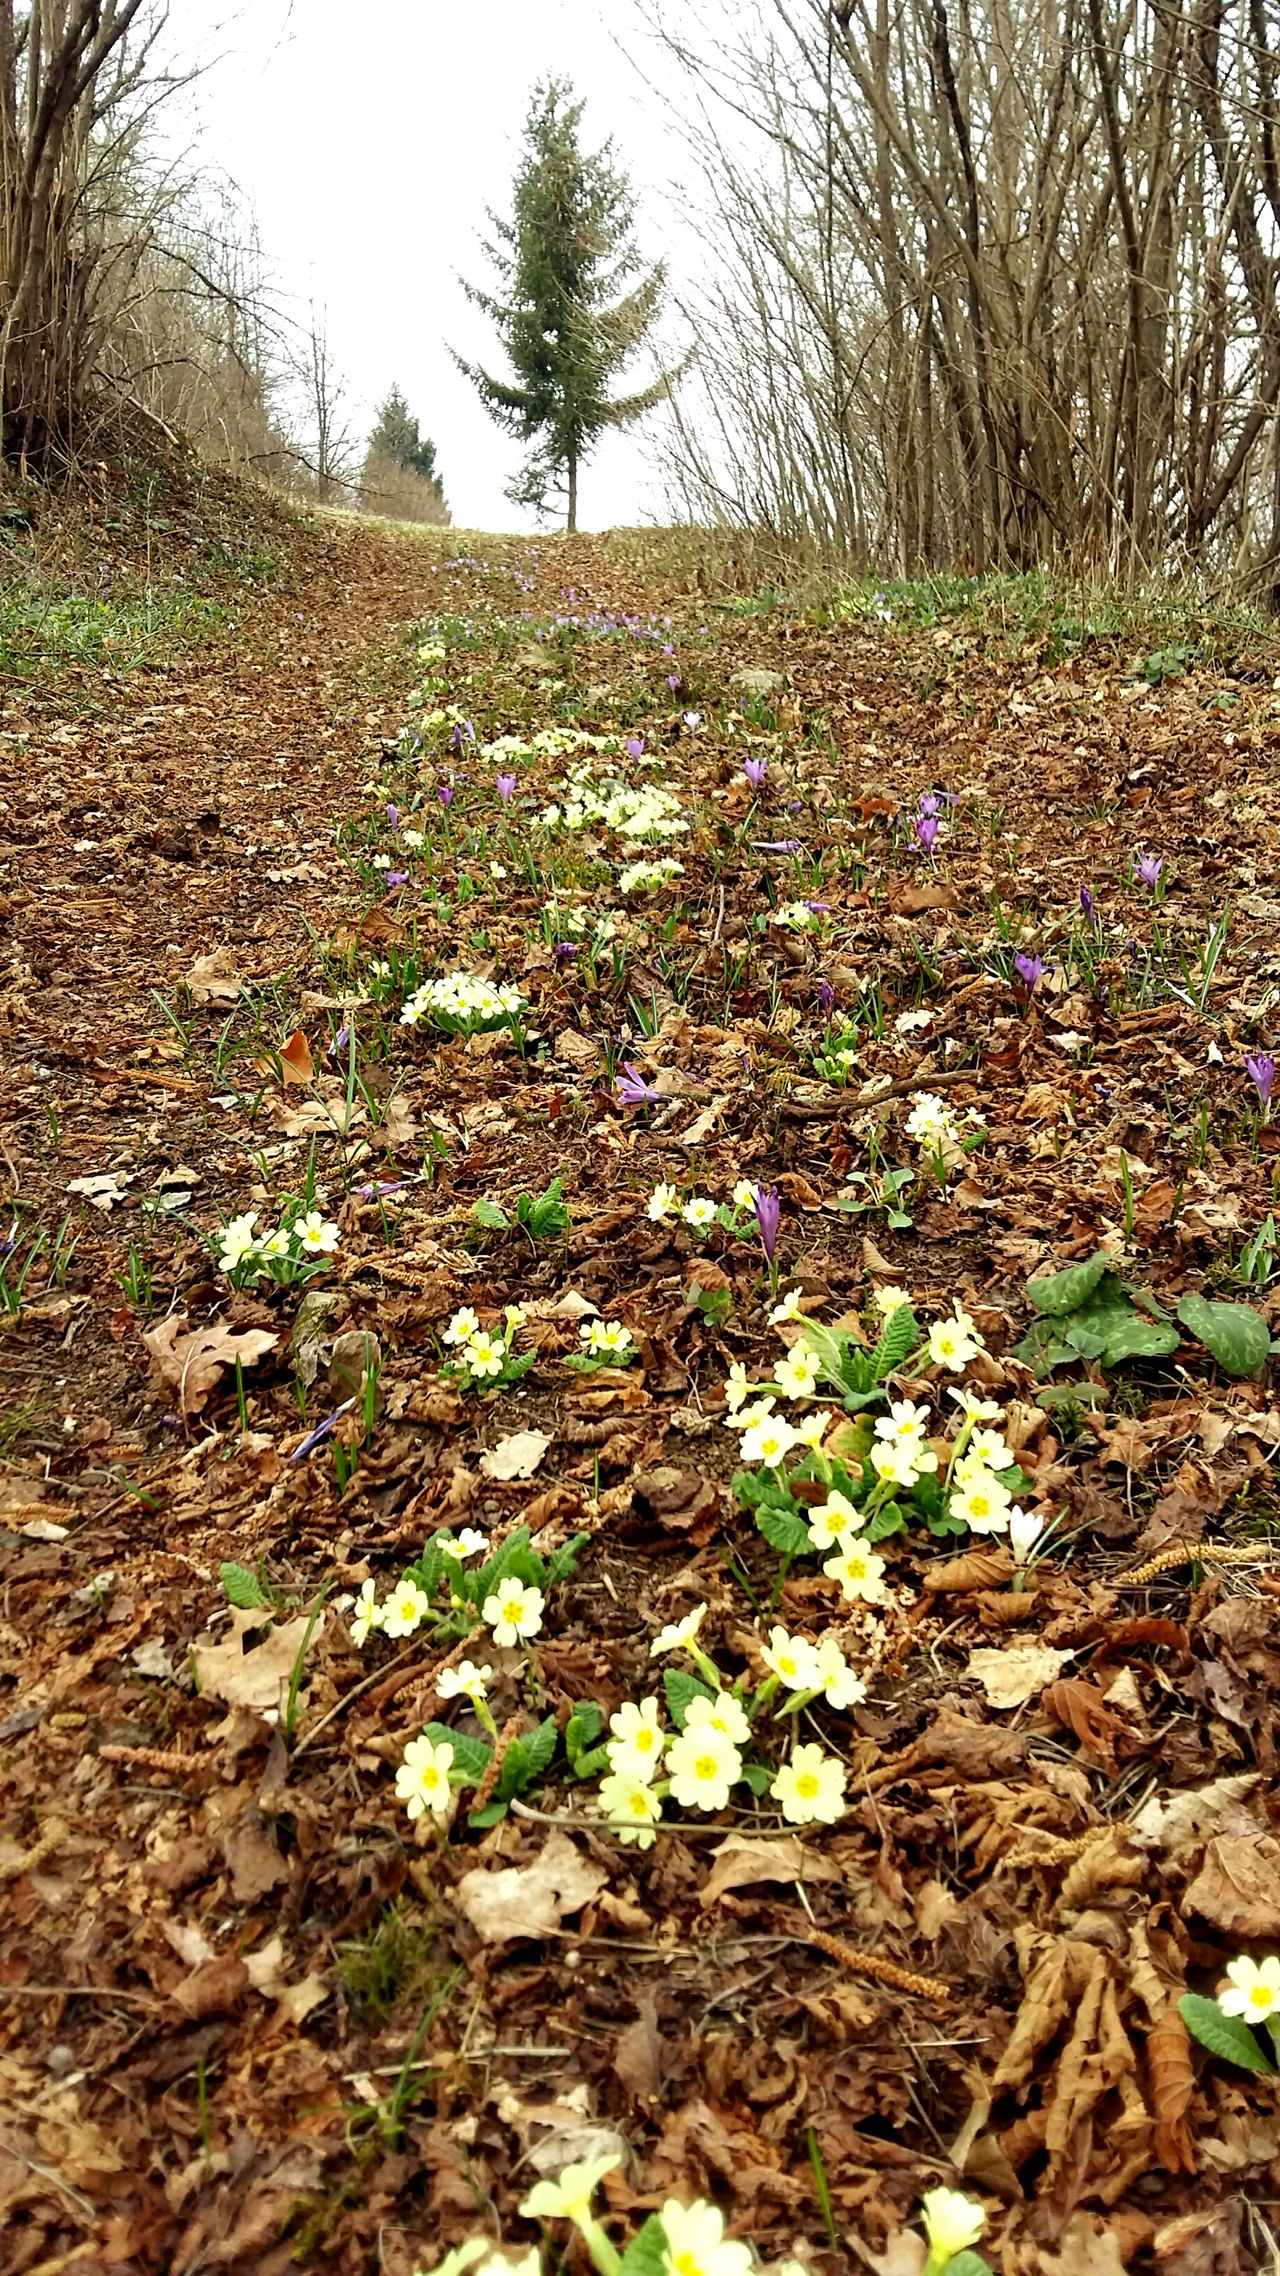 Nature Growth Beautiful Day Beauty In Nature Plant Hiking Trip Nature Photography Beauty In Nature Outdoors Flower Field No People Flowers Way Primroses Primrose